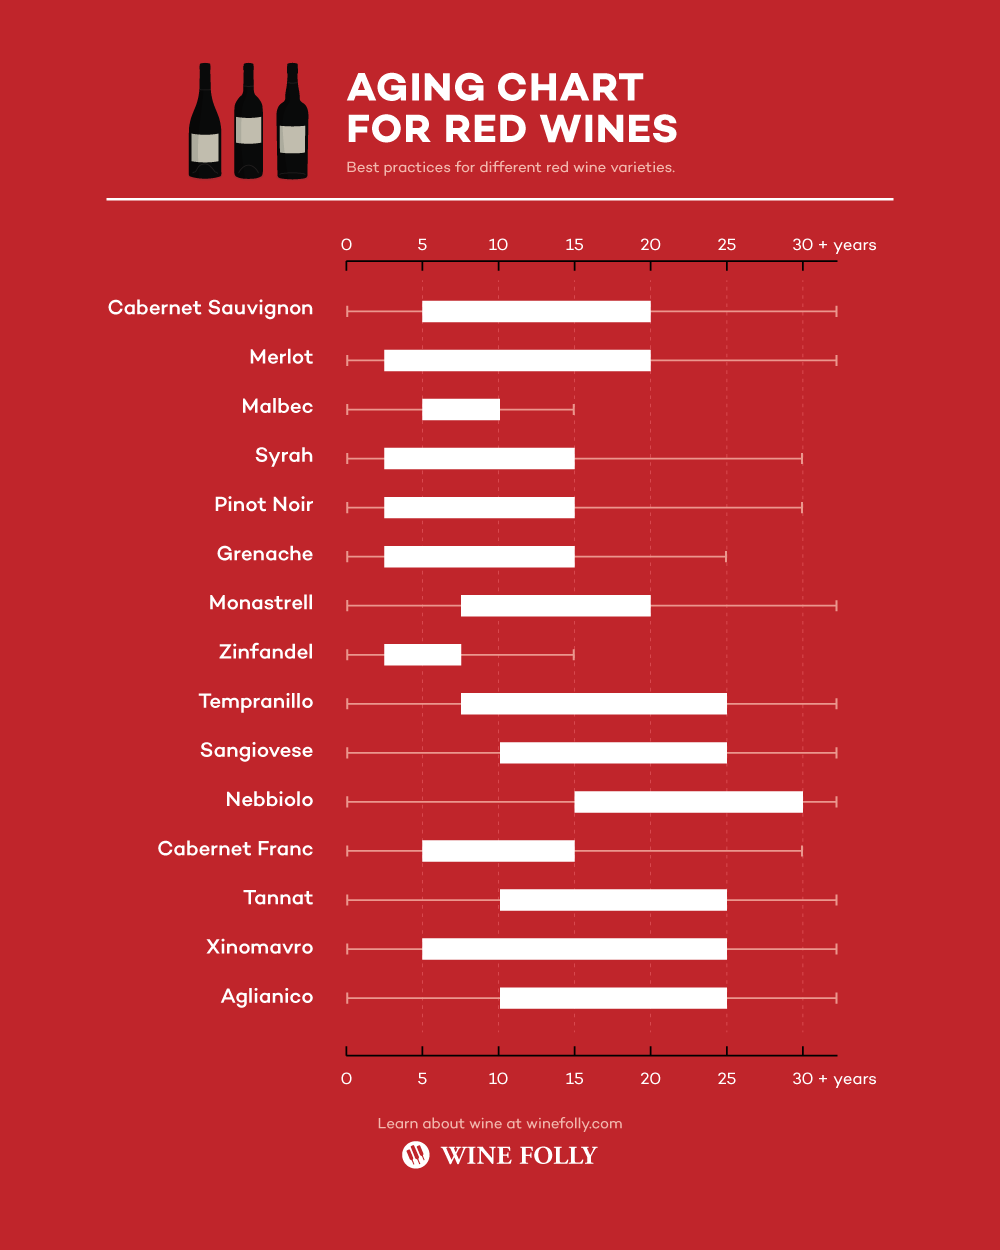 Red Wine Variety Aging Chart - Infographic by Wine Folly